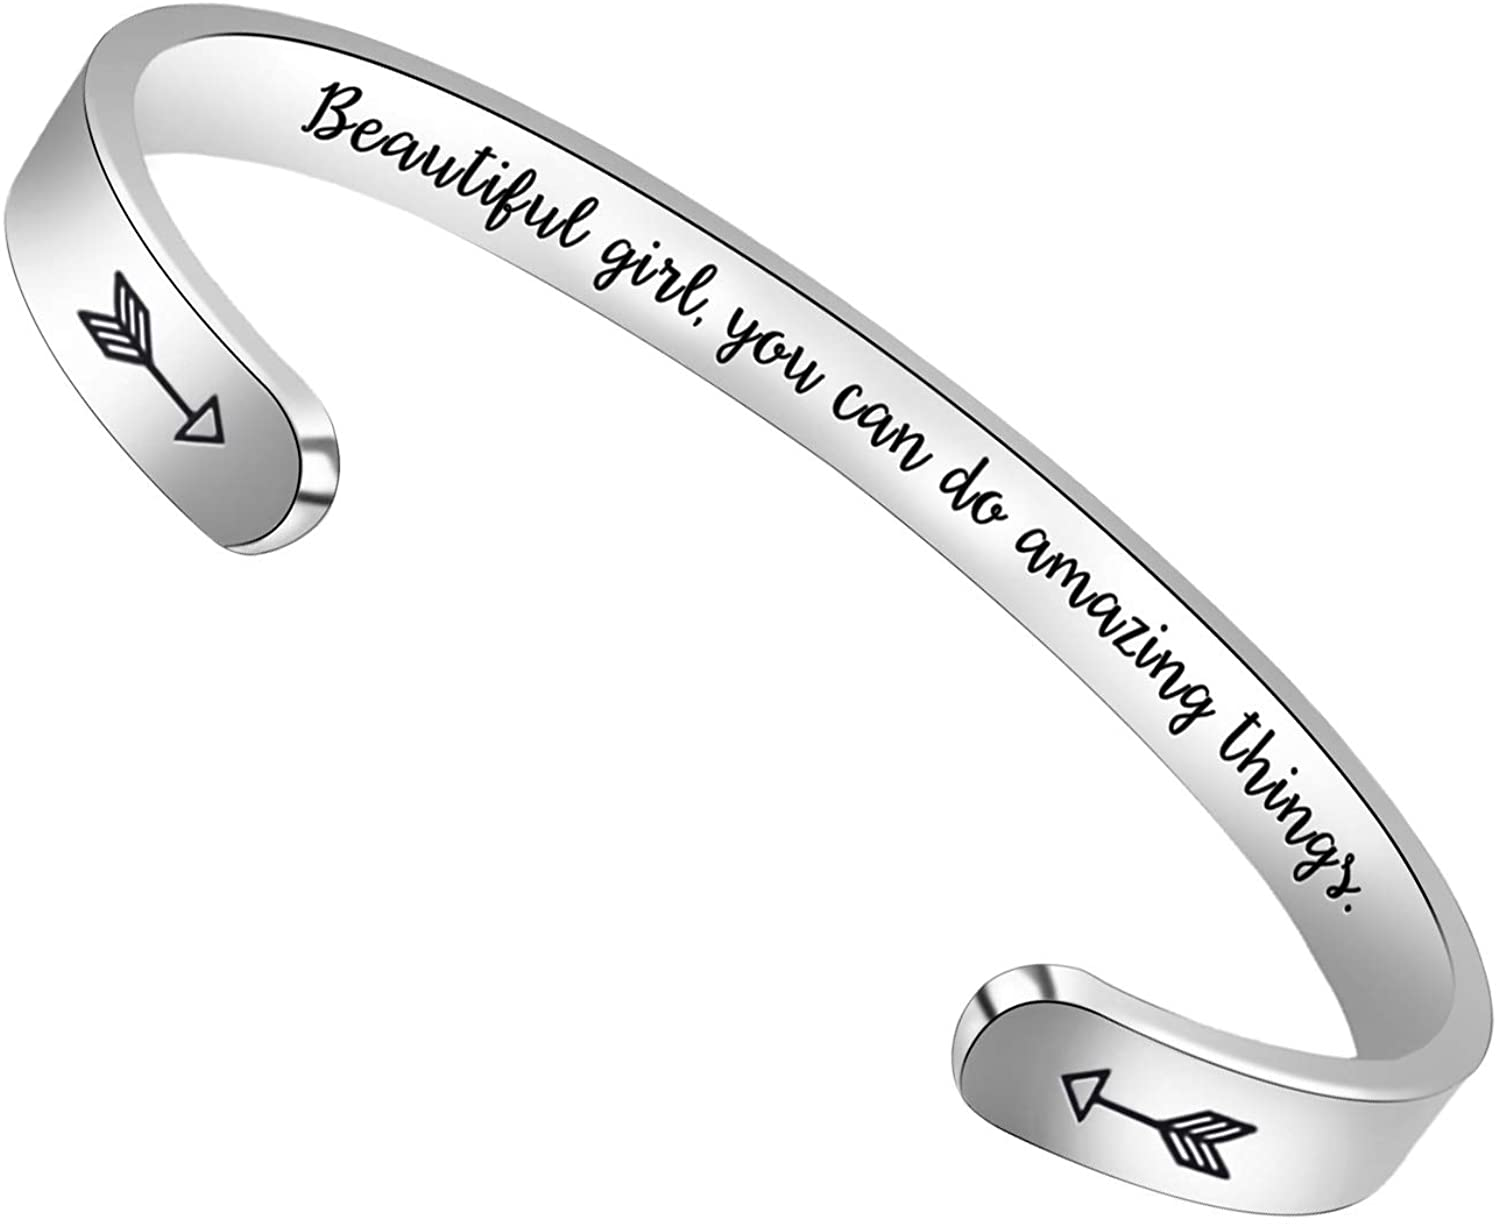 Inspirational Teen Girl Gifts for Her Bracelets for Teenage Uplifting Cuff Bangle Mantra Quotes Engraved with Gift Box.